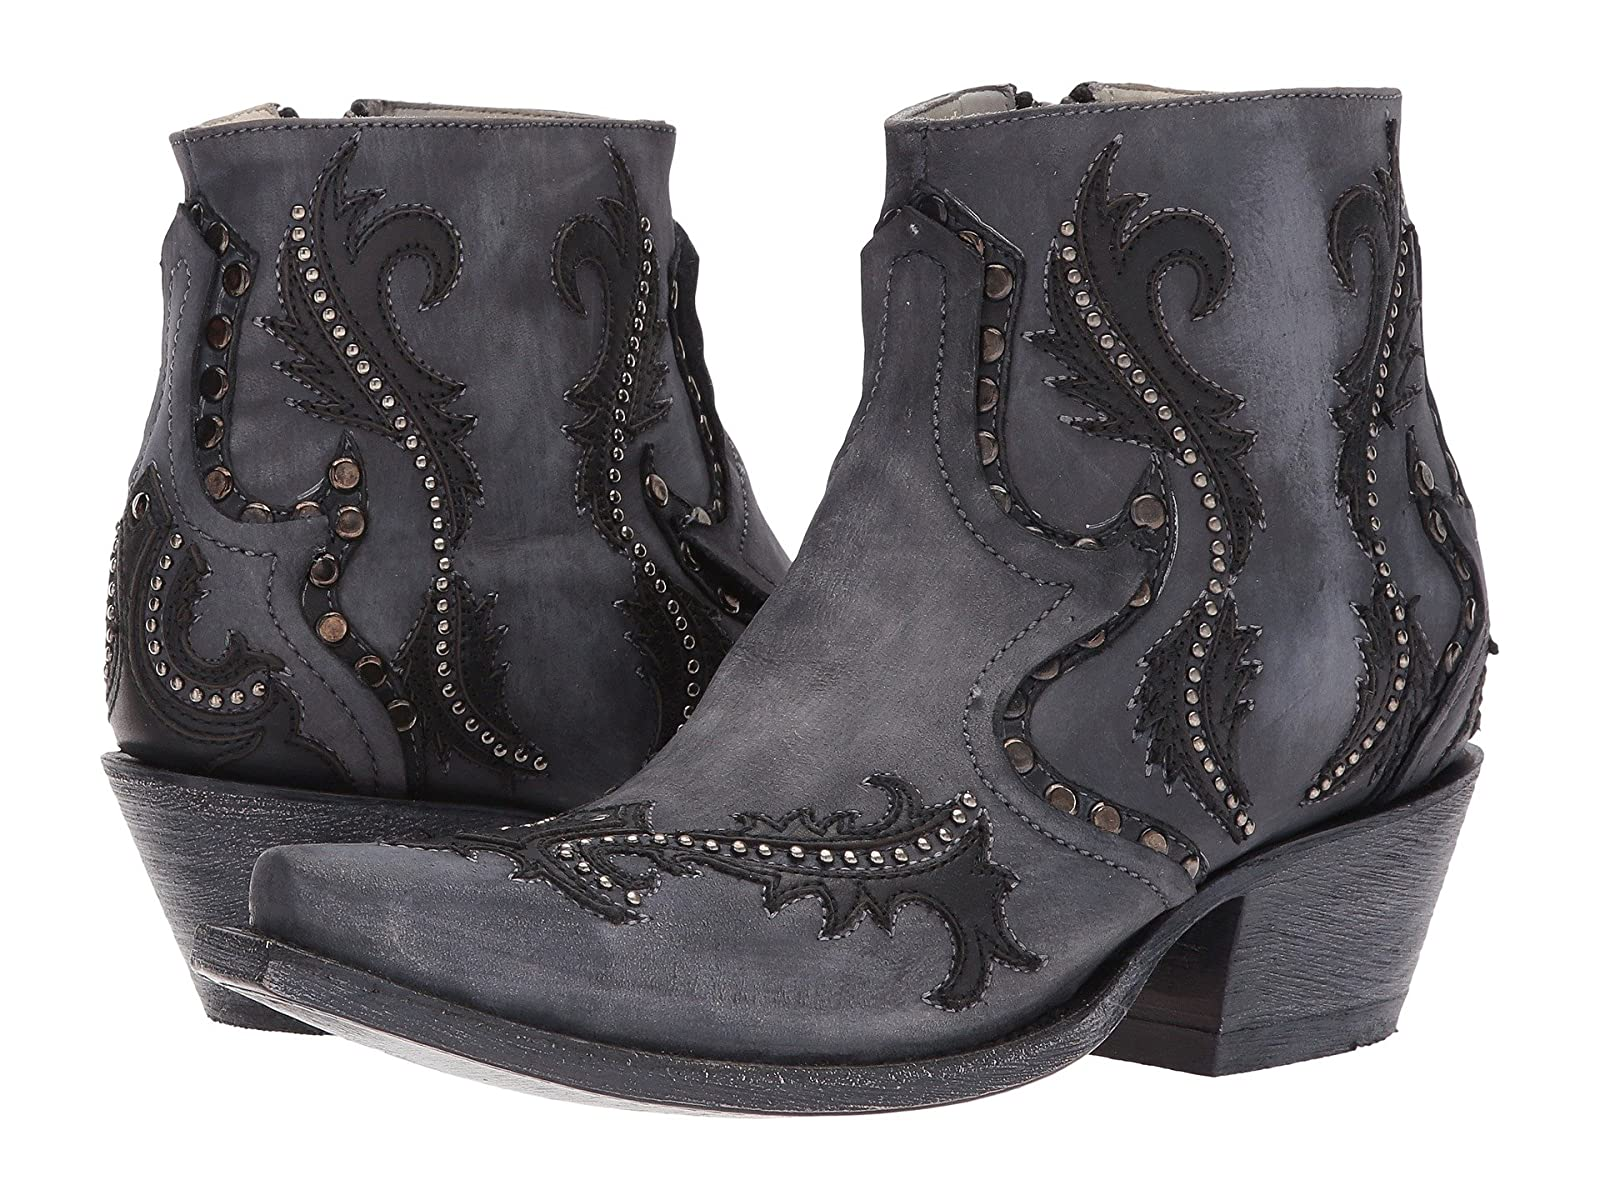 Corral Boots G1381Affordable and distinctive shoes